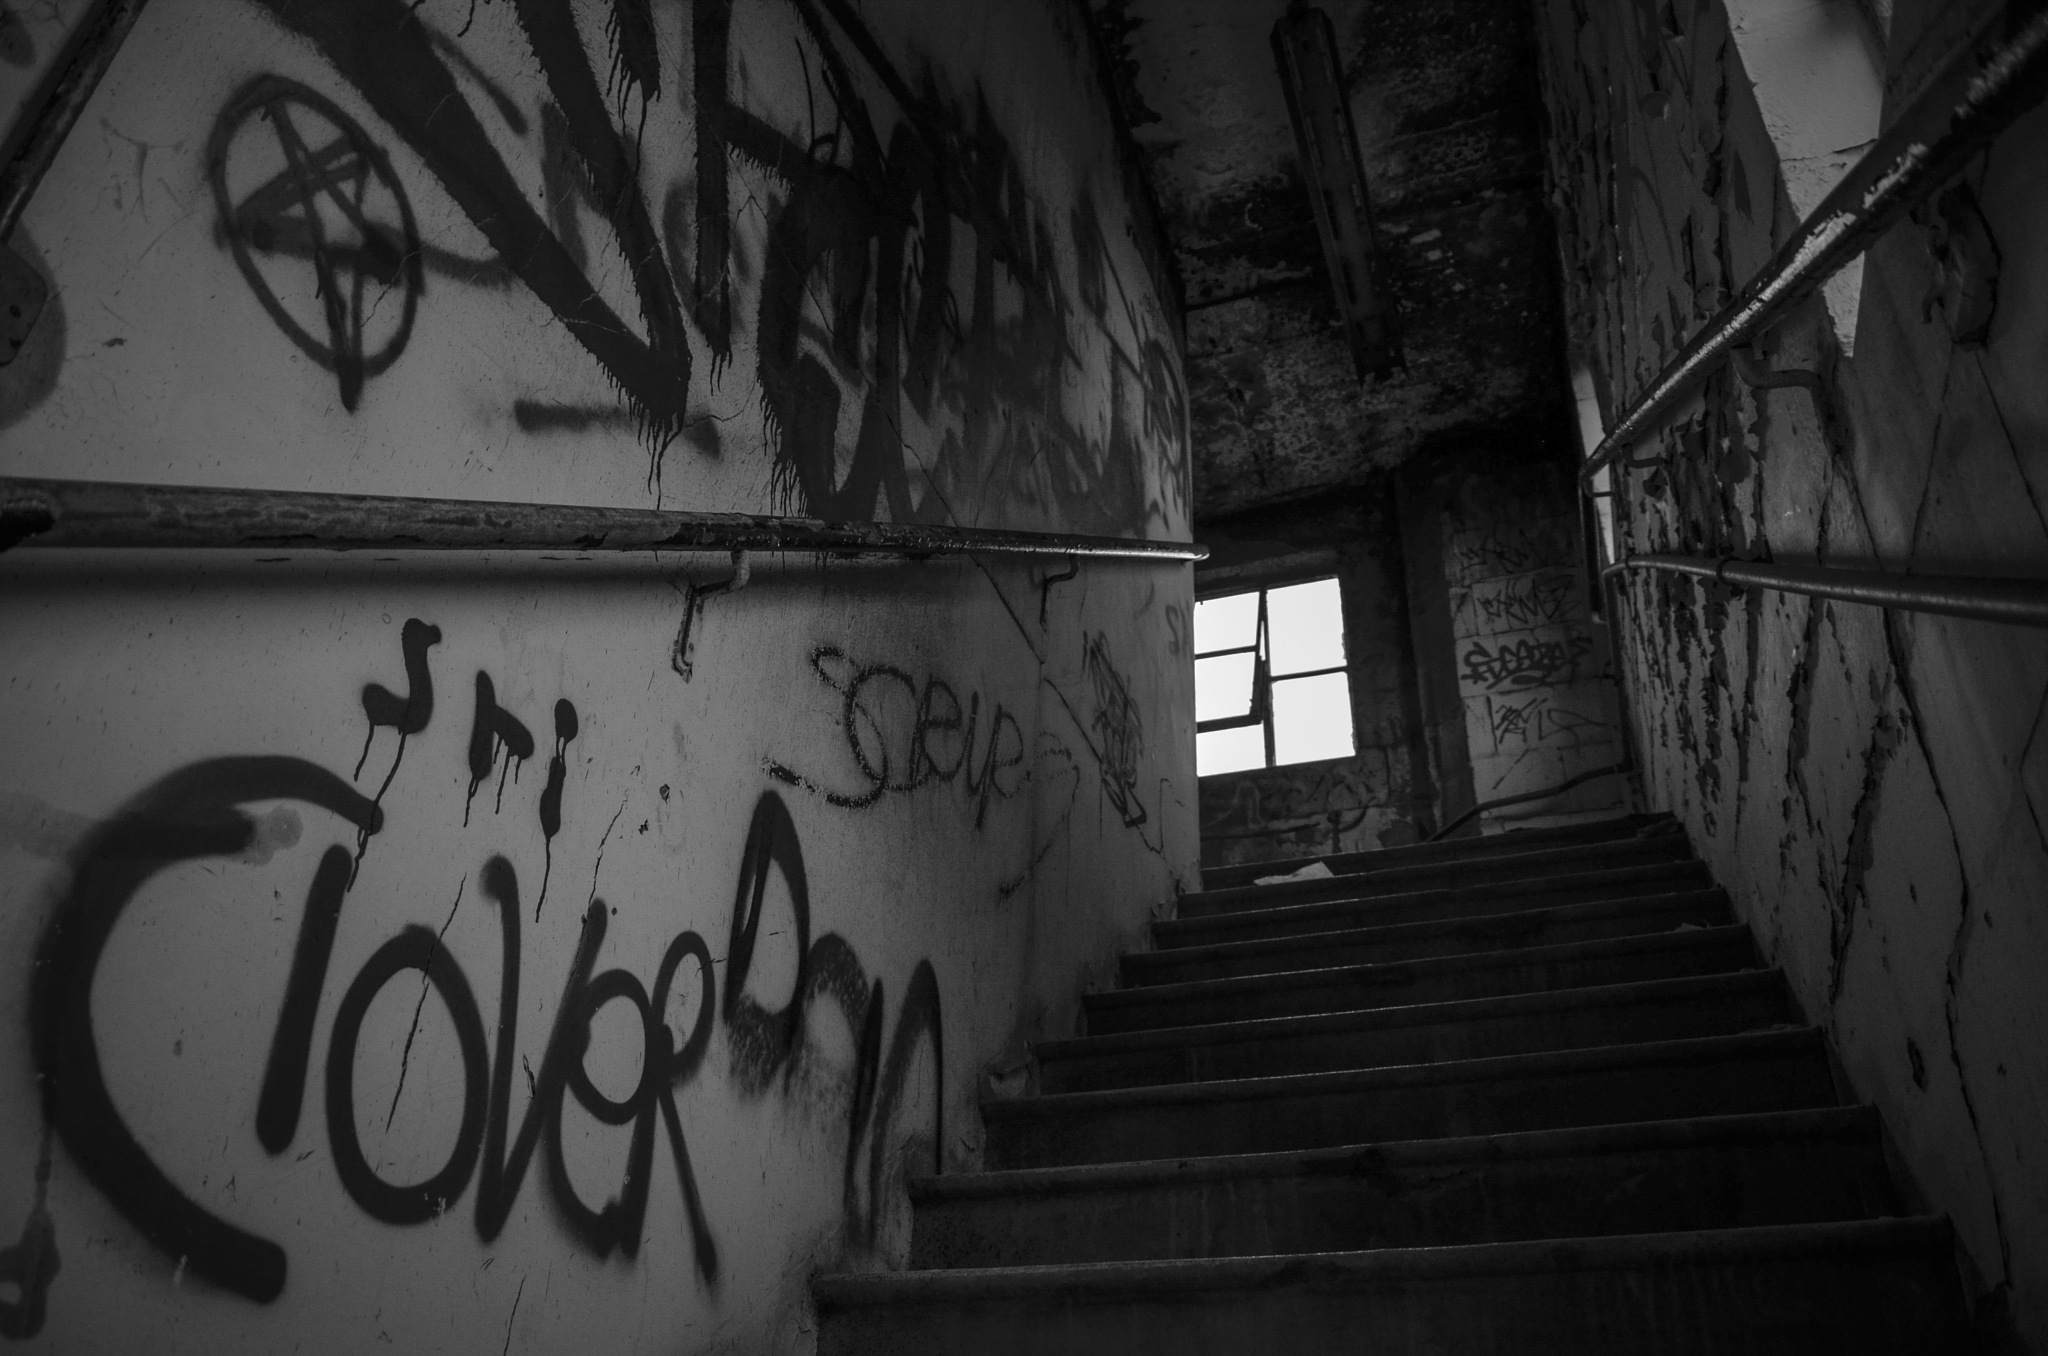 Stairway to hell by ChrisBowers